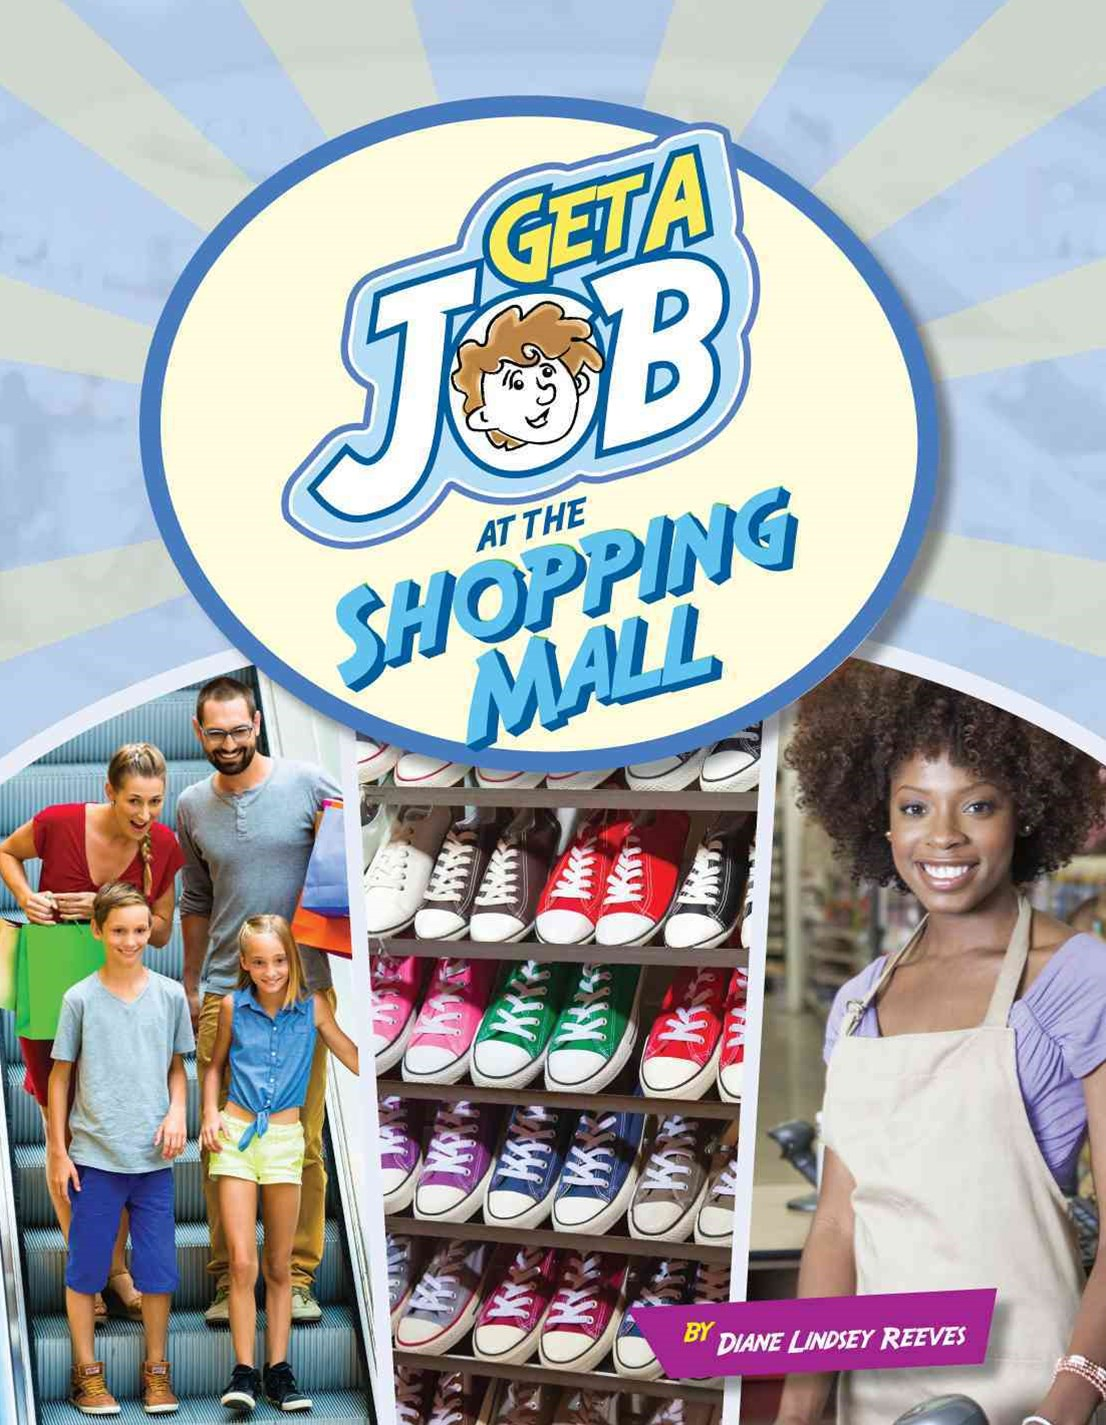 Get a Job at the Shoping Mall